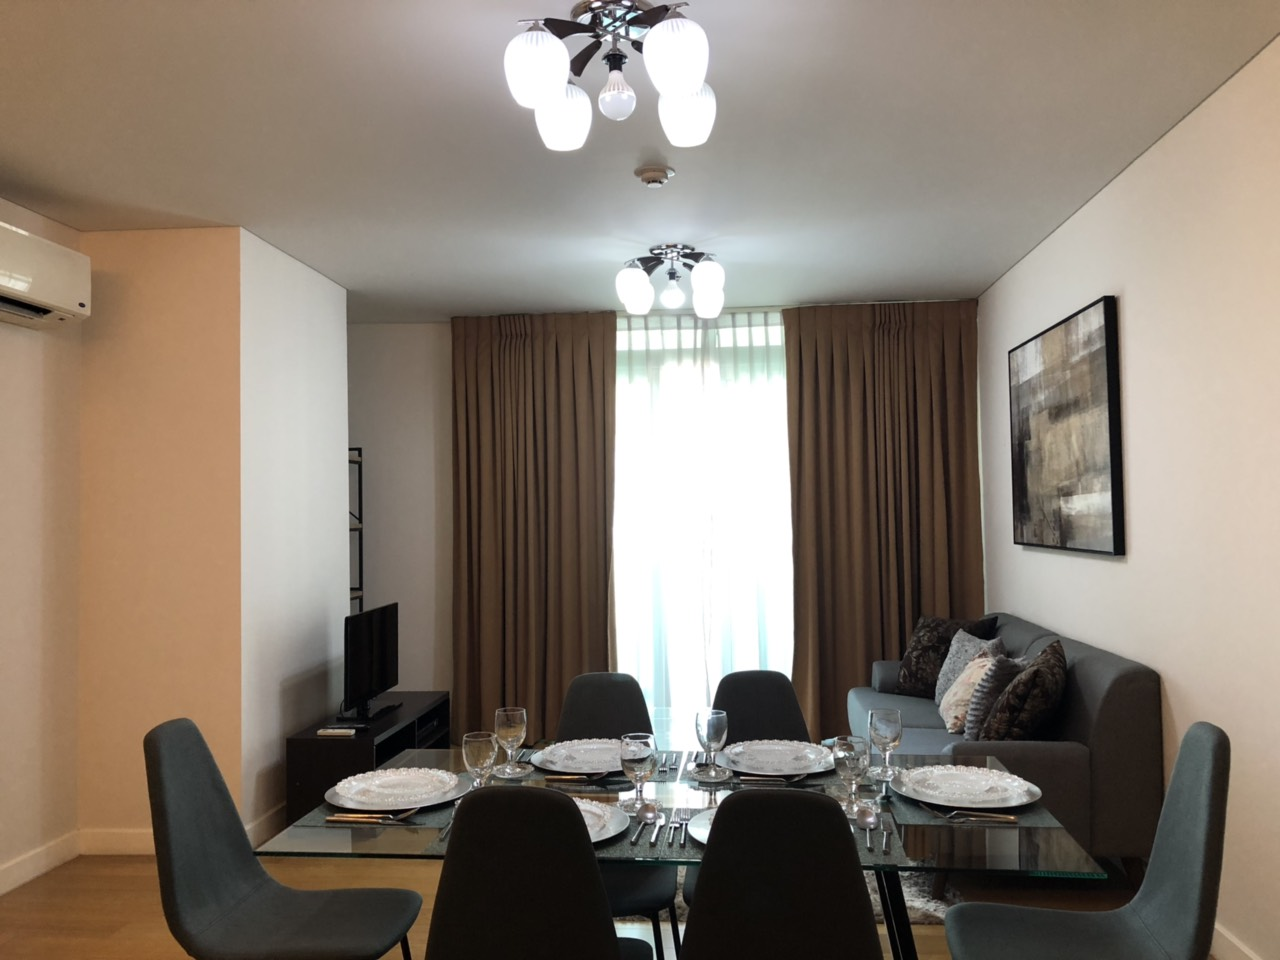 1BR Condo For Rent, Park Terraces Dining Area